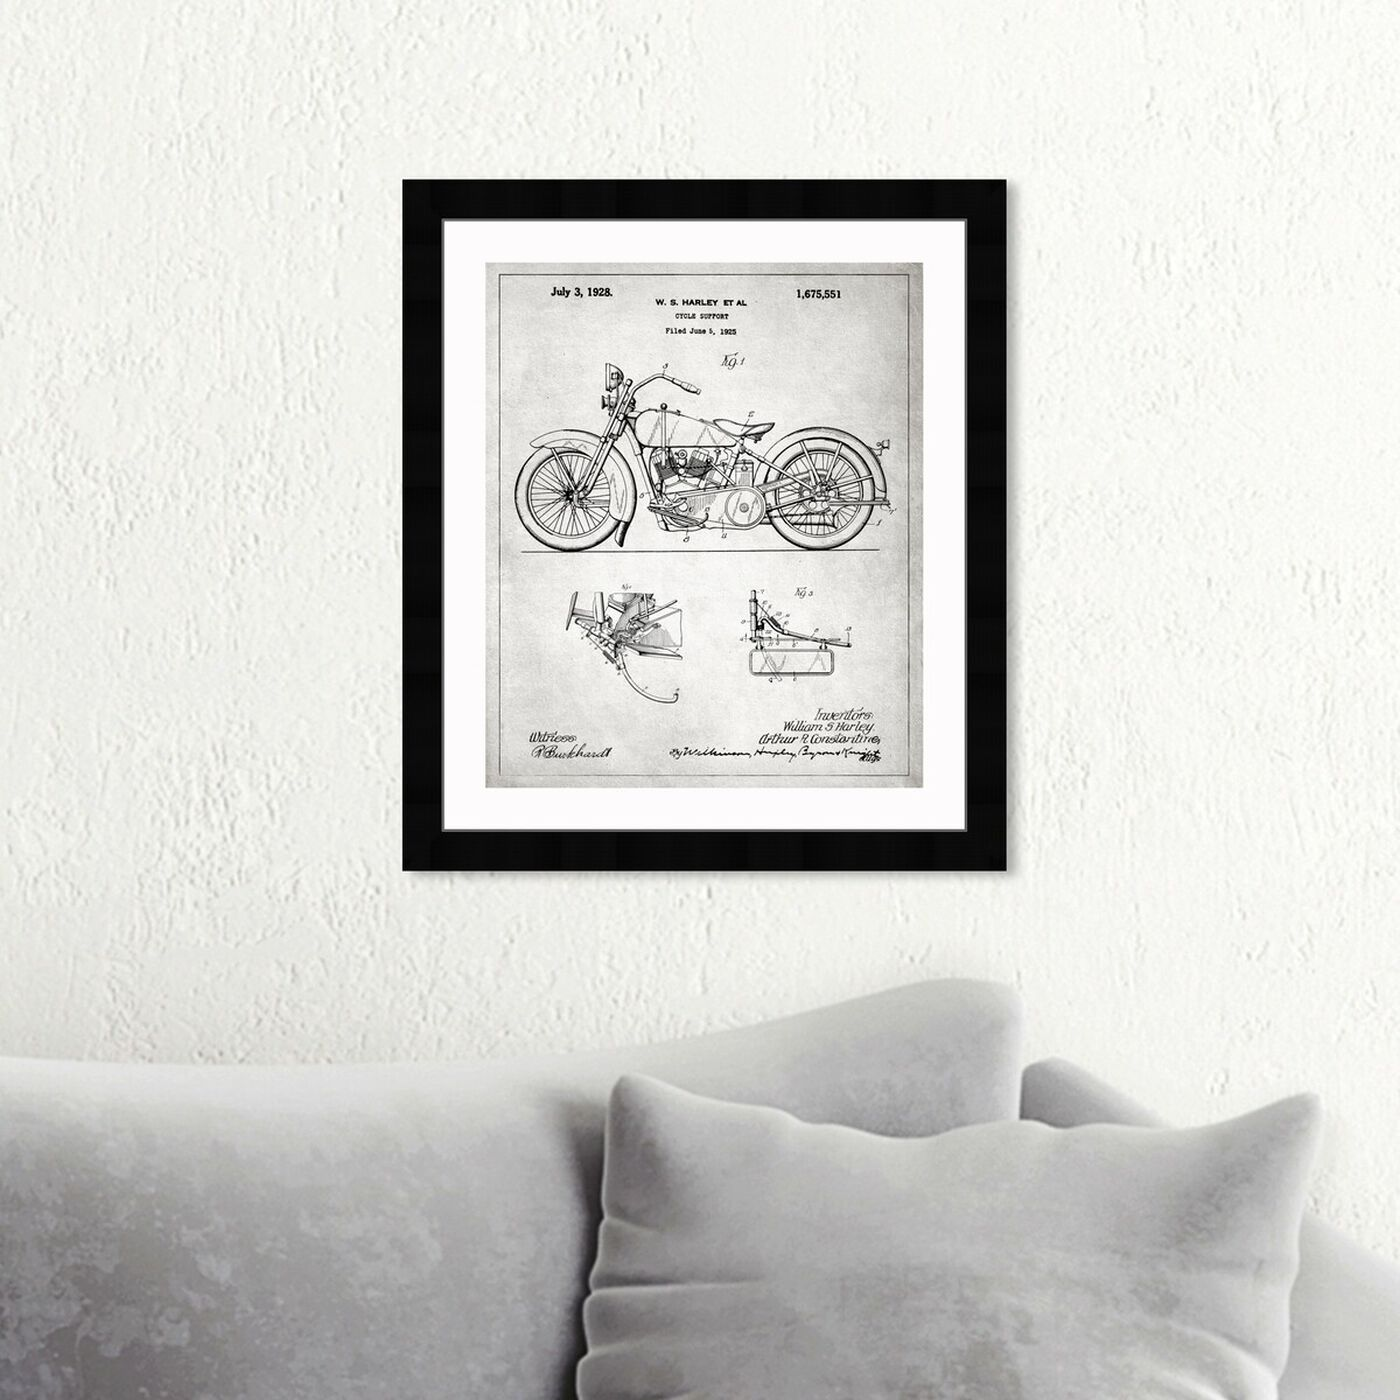 Hanging view of Harley, 1928 - Gray featuring transportation and motorcycles art.